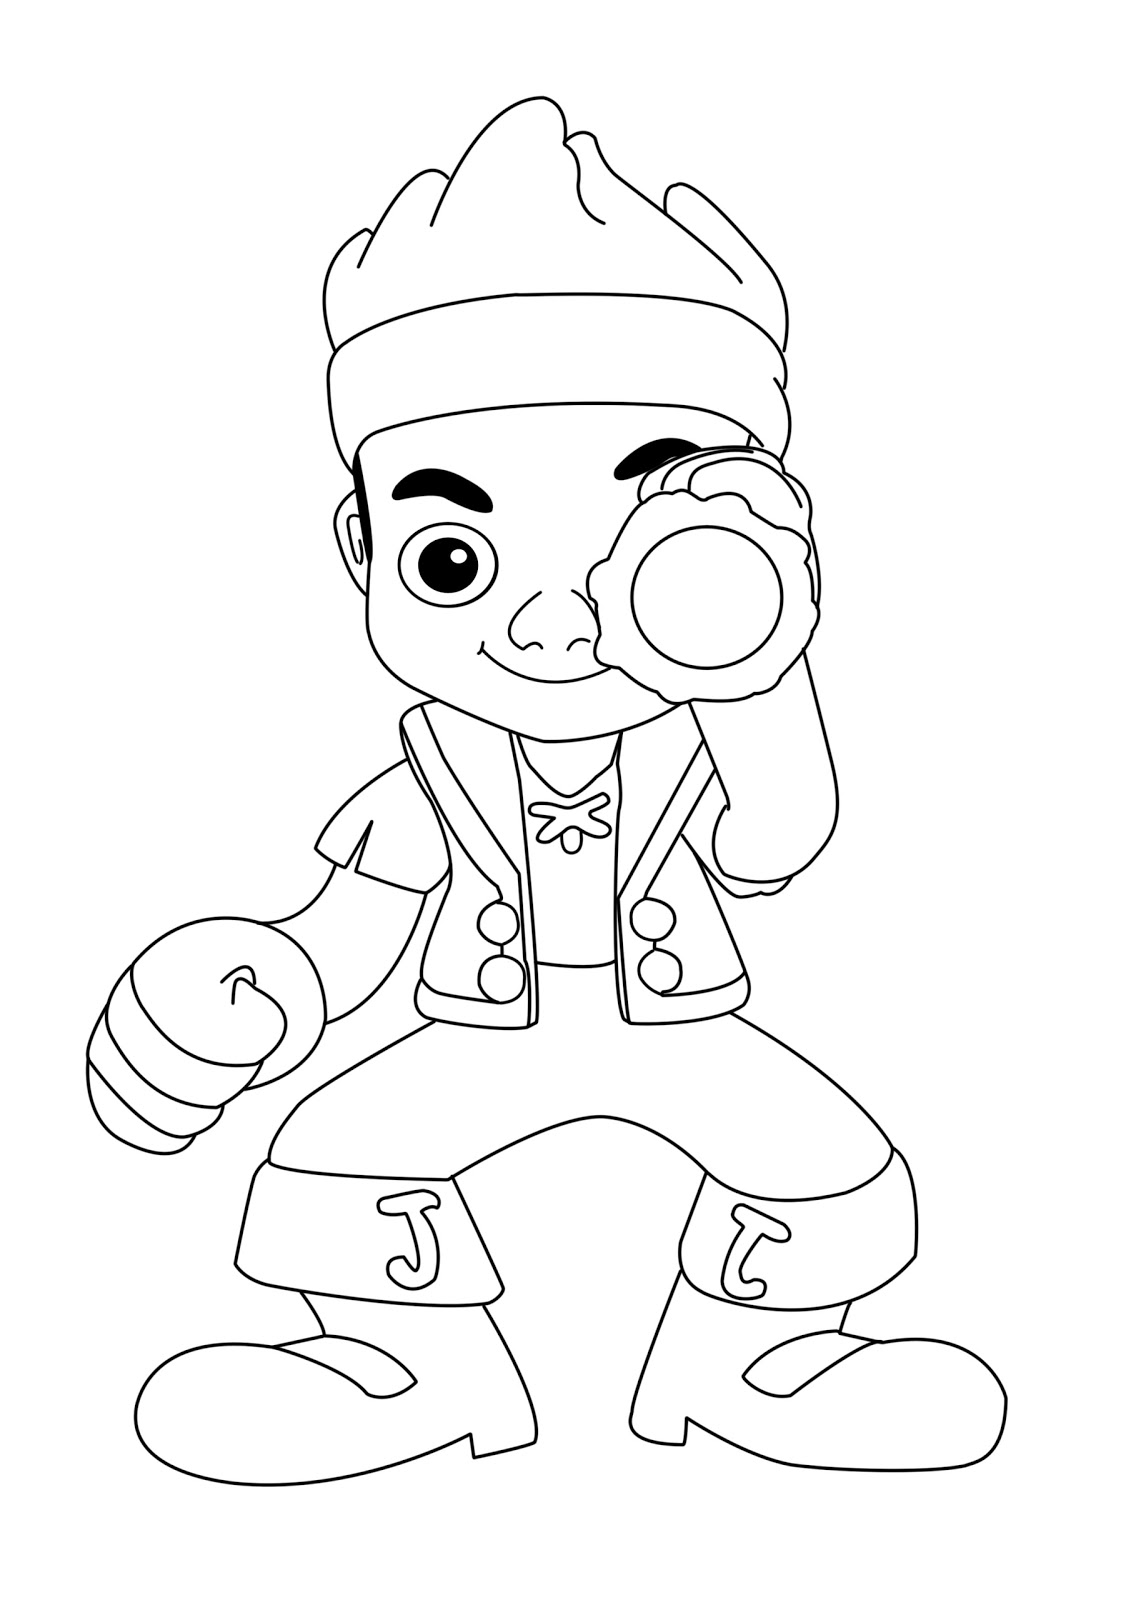 jake and the neverland pirates coloring page coloring pages for captain jake and the neverland pirates jake and neverland the page pirates coloring